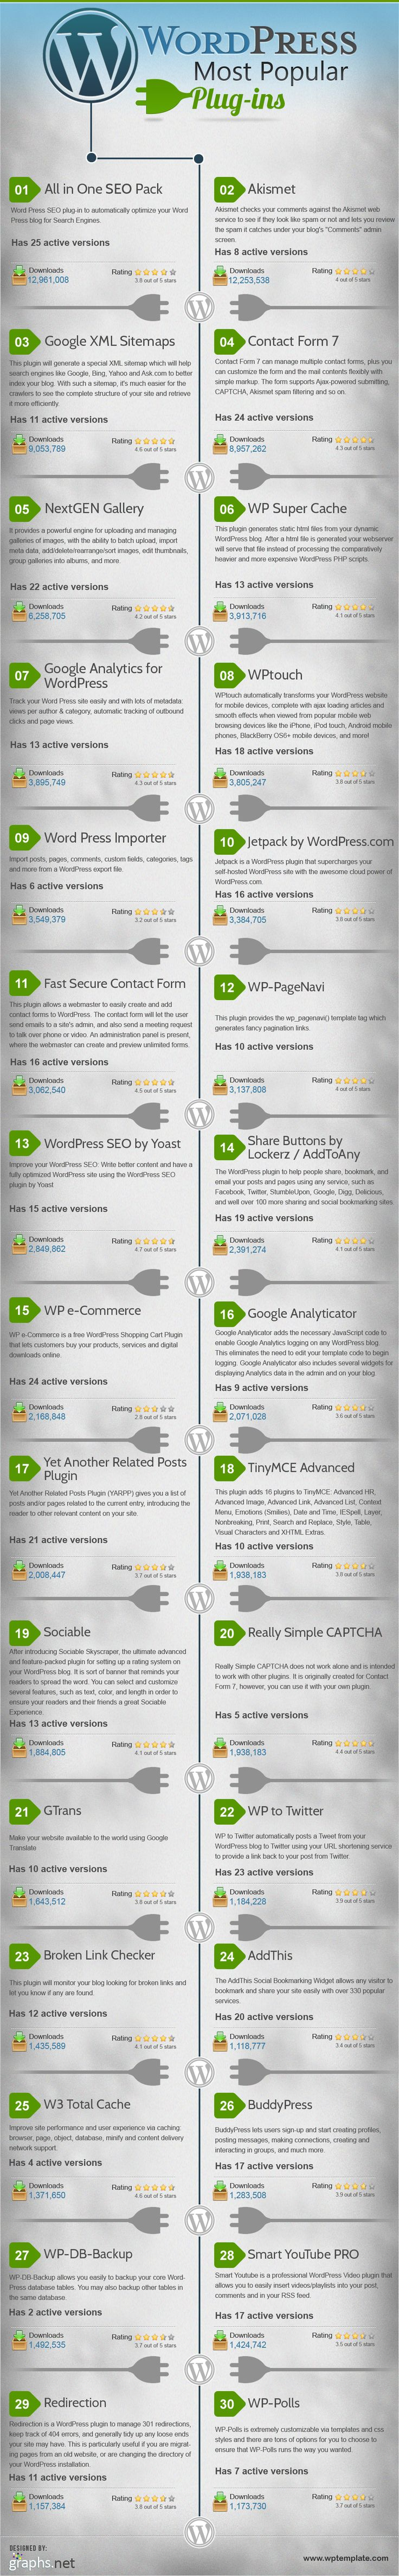 Great infographic for wordpress users.  WordPress Most Popular Plugins